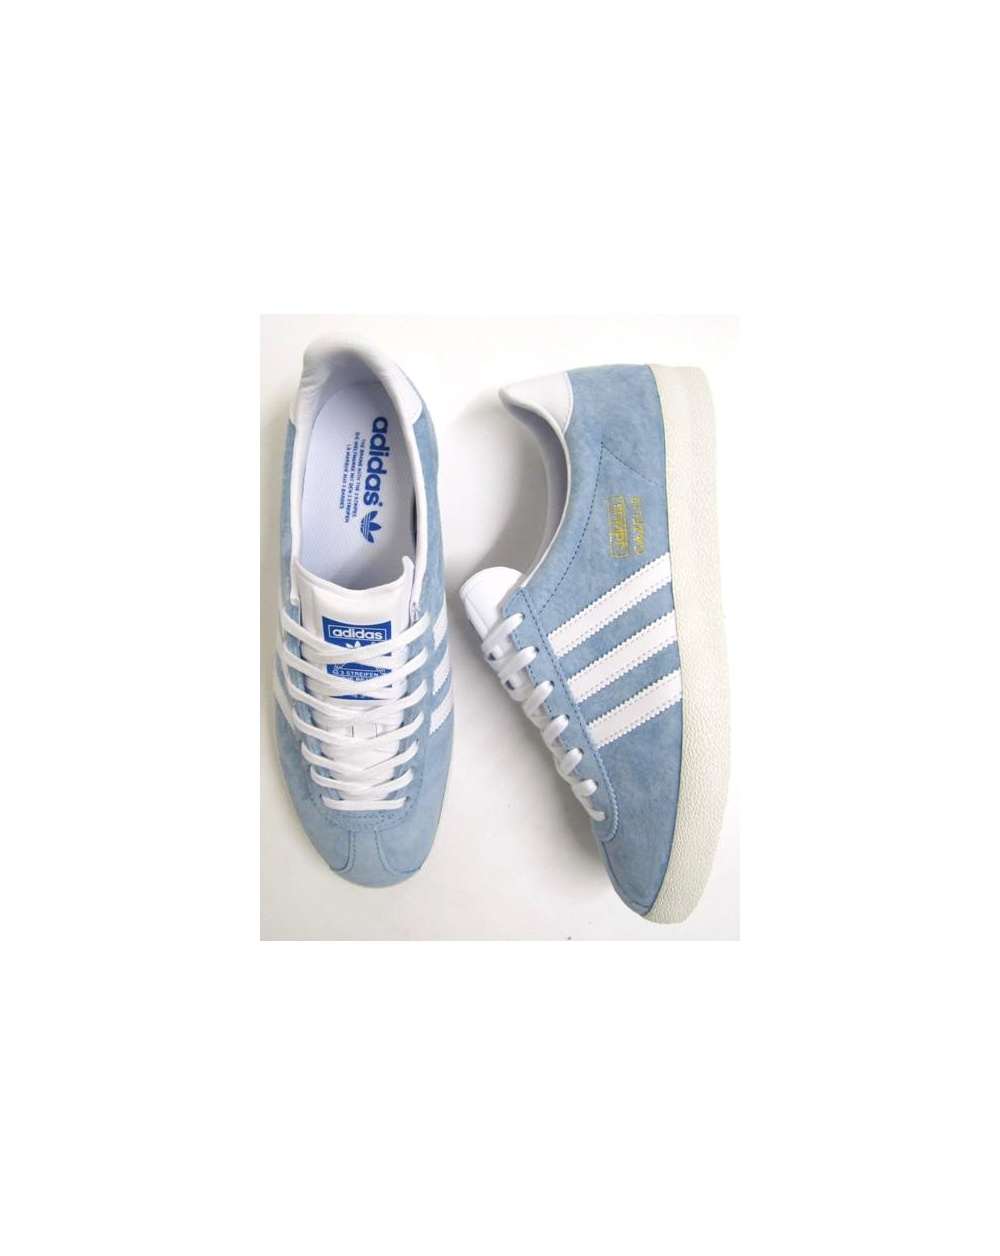 Adidas Gazelle 2 womens mens black, blue, red, white trainers outlet